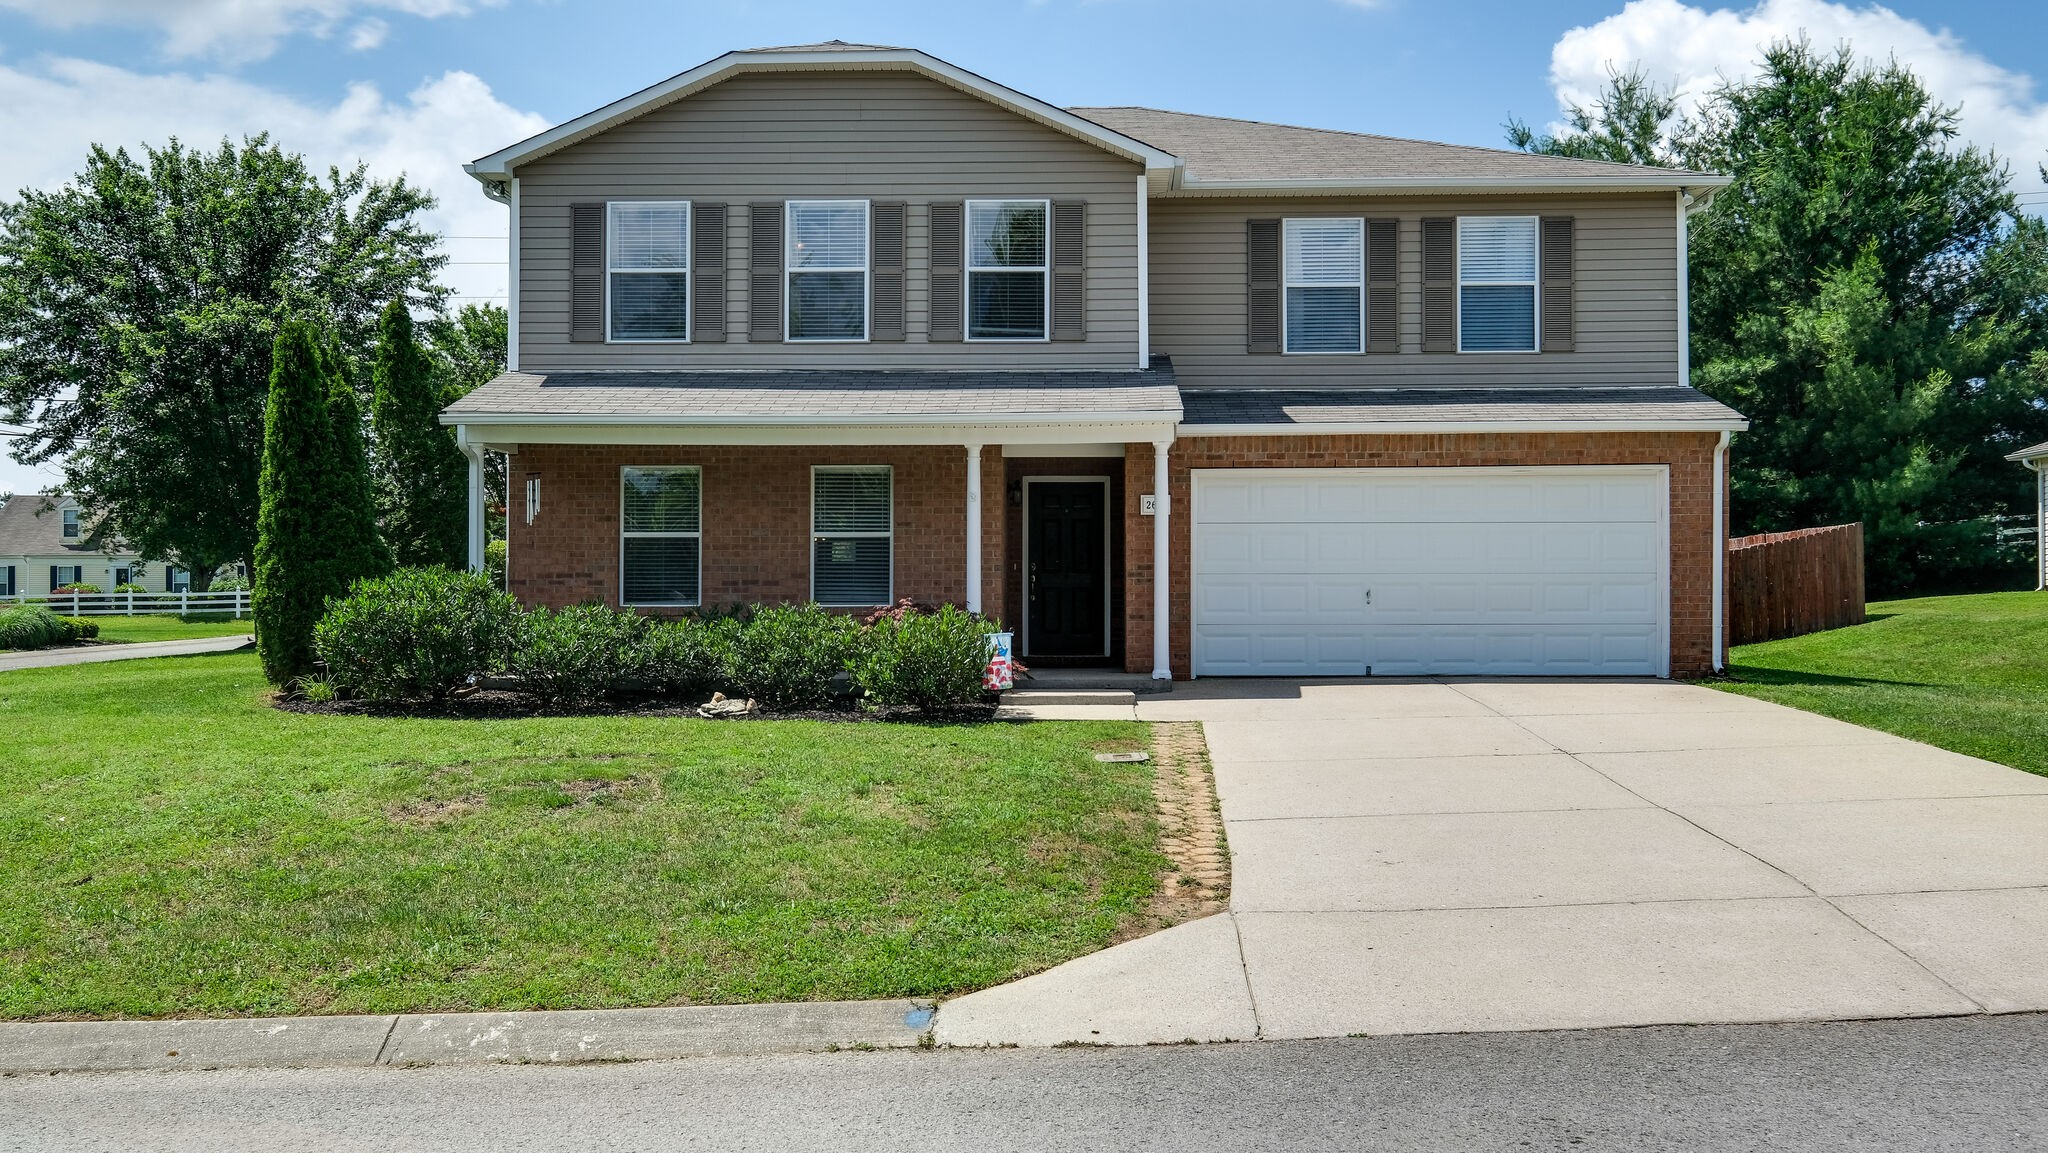 2641 Sutherland Dr Property Photo - Thompsons Station, TN real estate listing